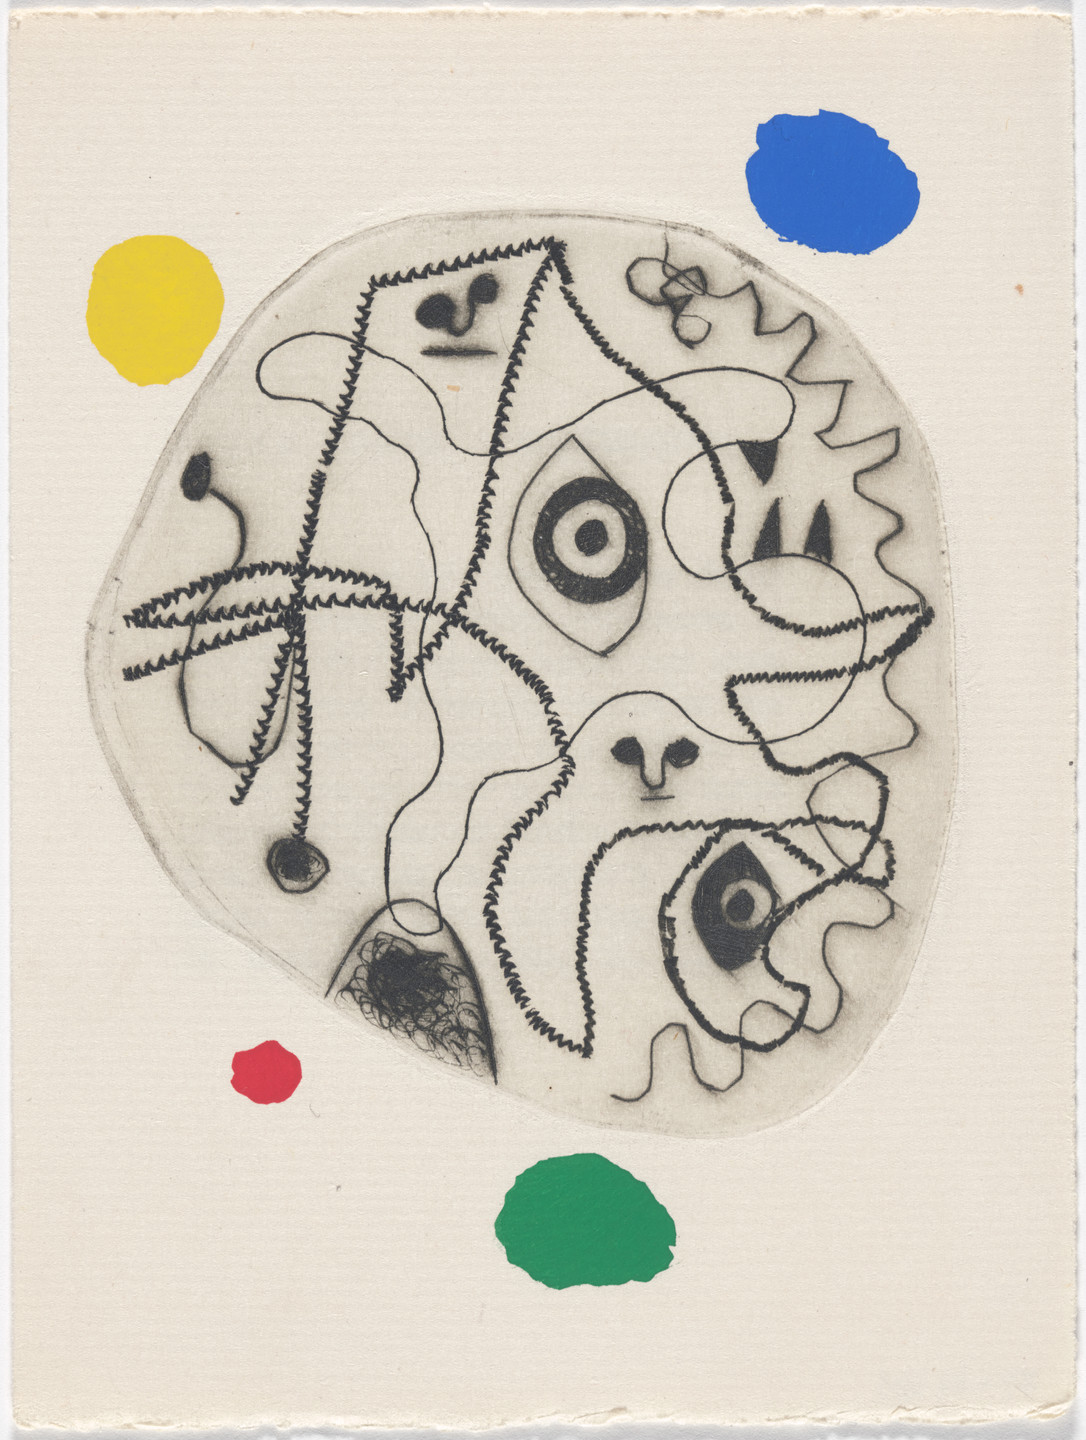 Joan Miró. Plate (page 51) from Le Désespéranto (Desesperanto): Volume III from L'Antitête (The Anti-Head). 1947–49, published 1949